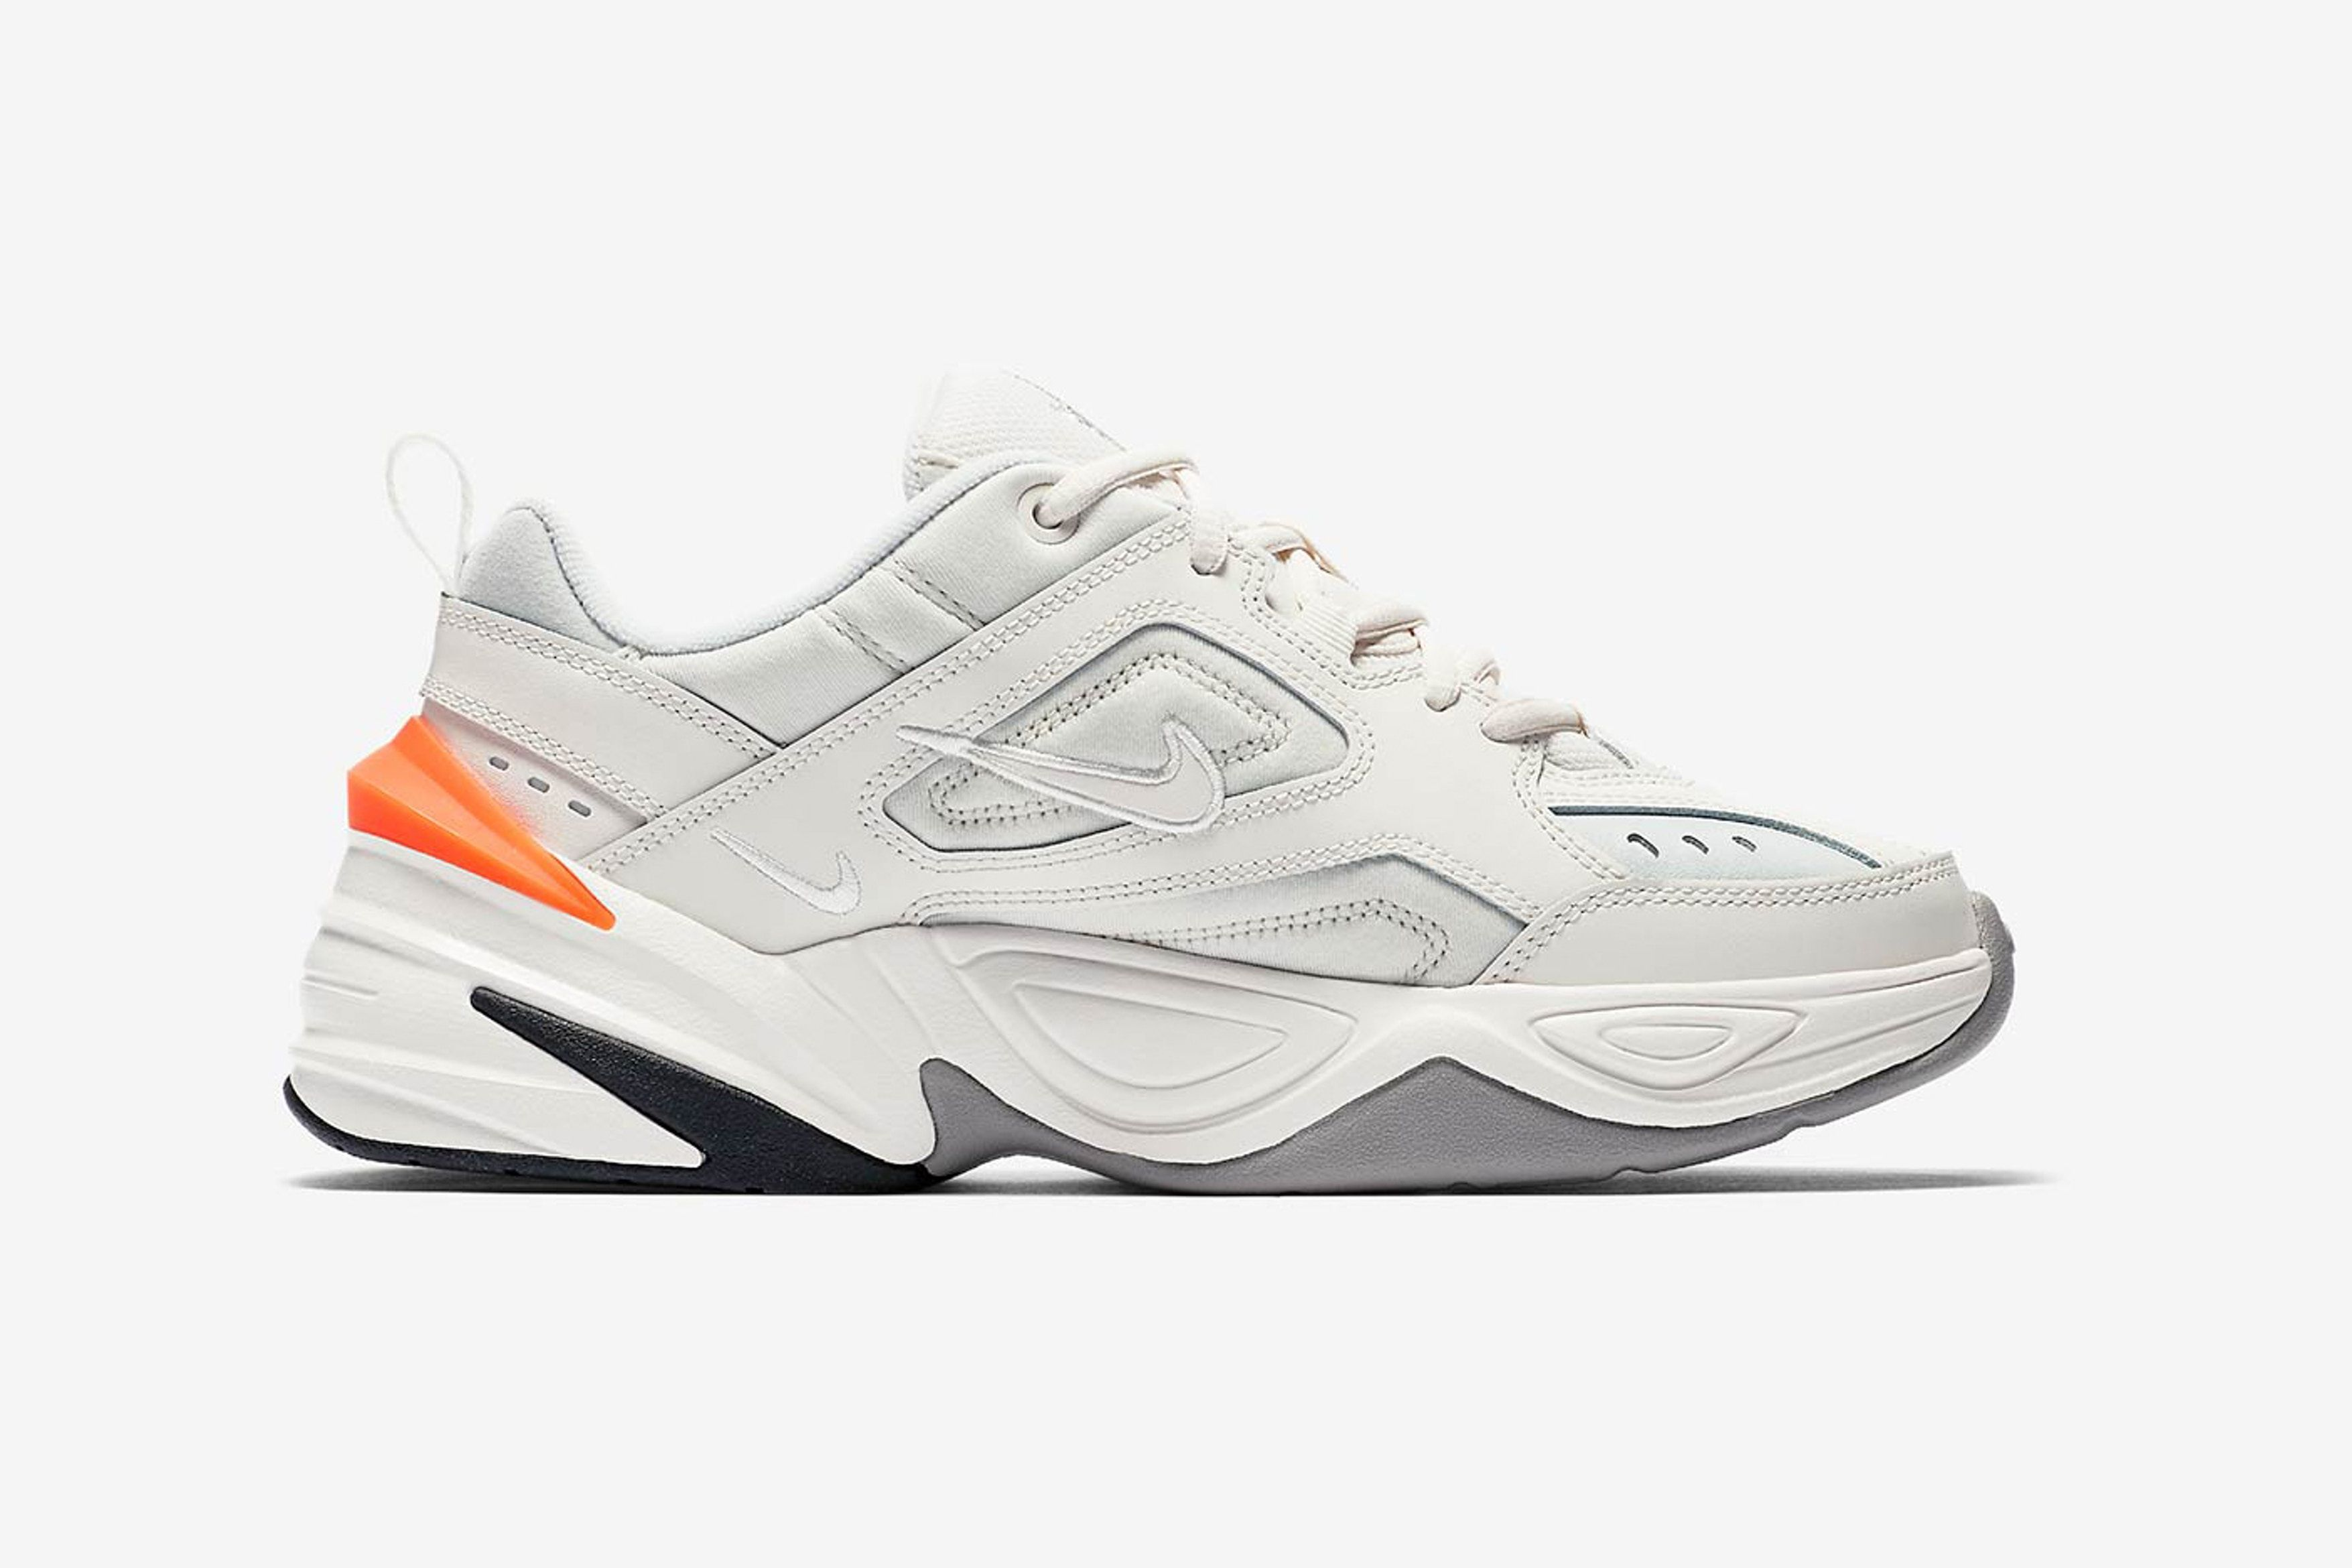 d9a4b5f63071 Nike Unveils the M2K Tekno and We're in Dad Shoe Heaven | Sneakers ...